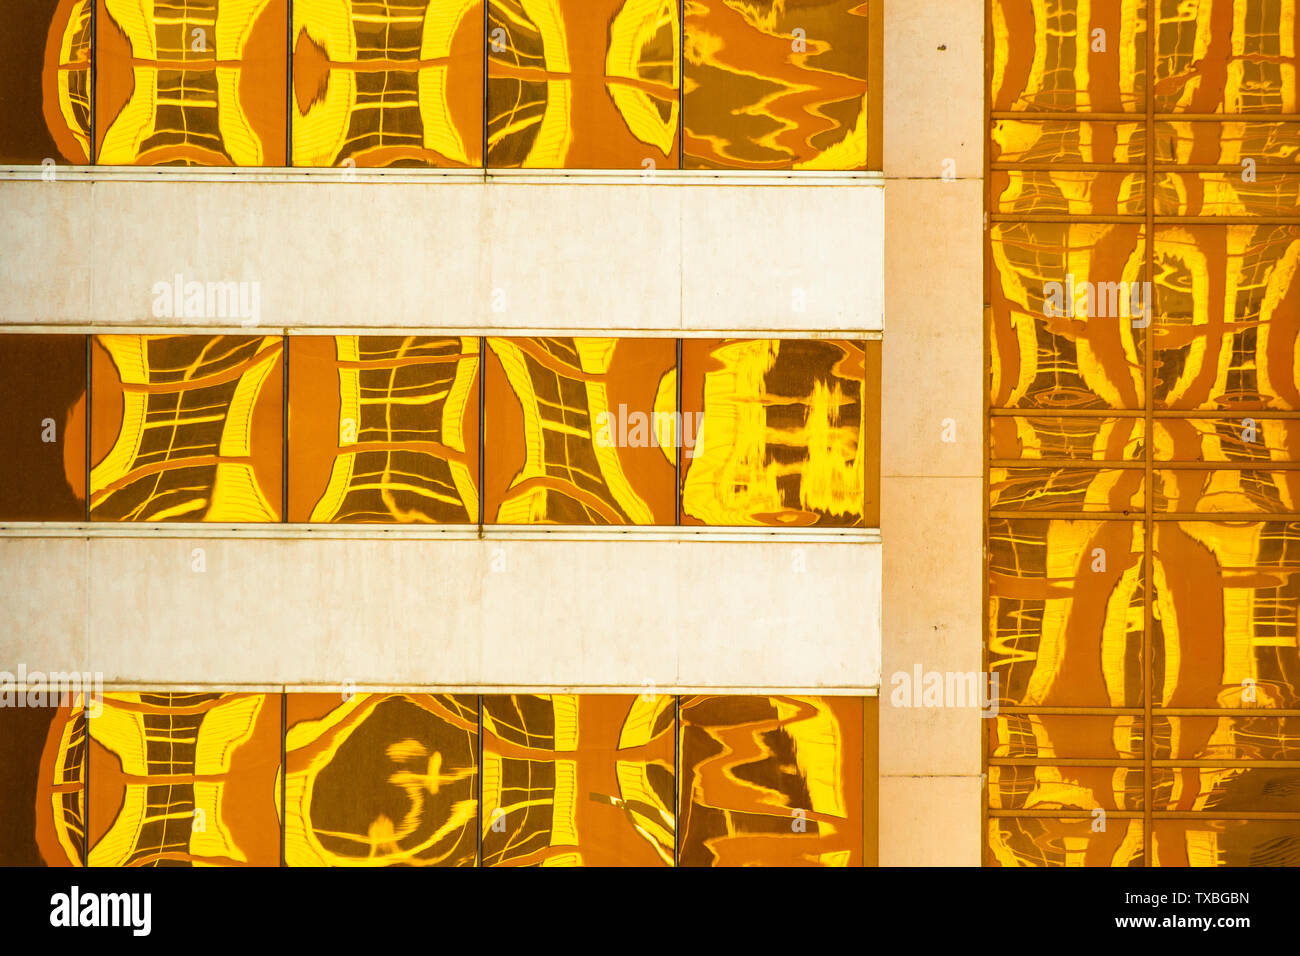 Abstract created by Golden yellow reflections on modern building windows Stock Photo